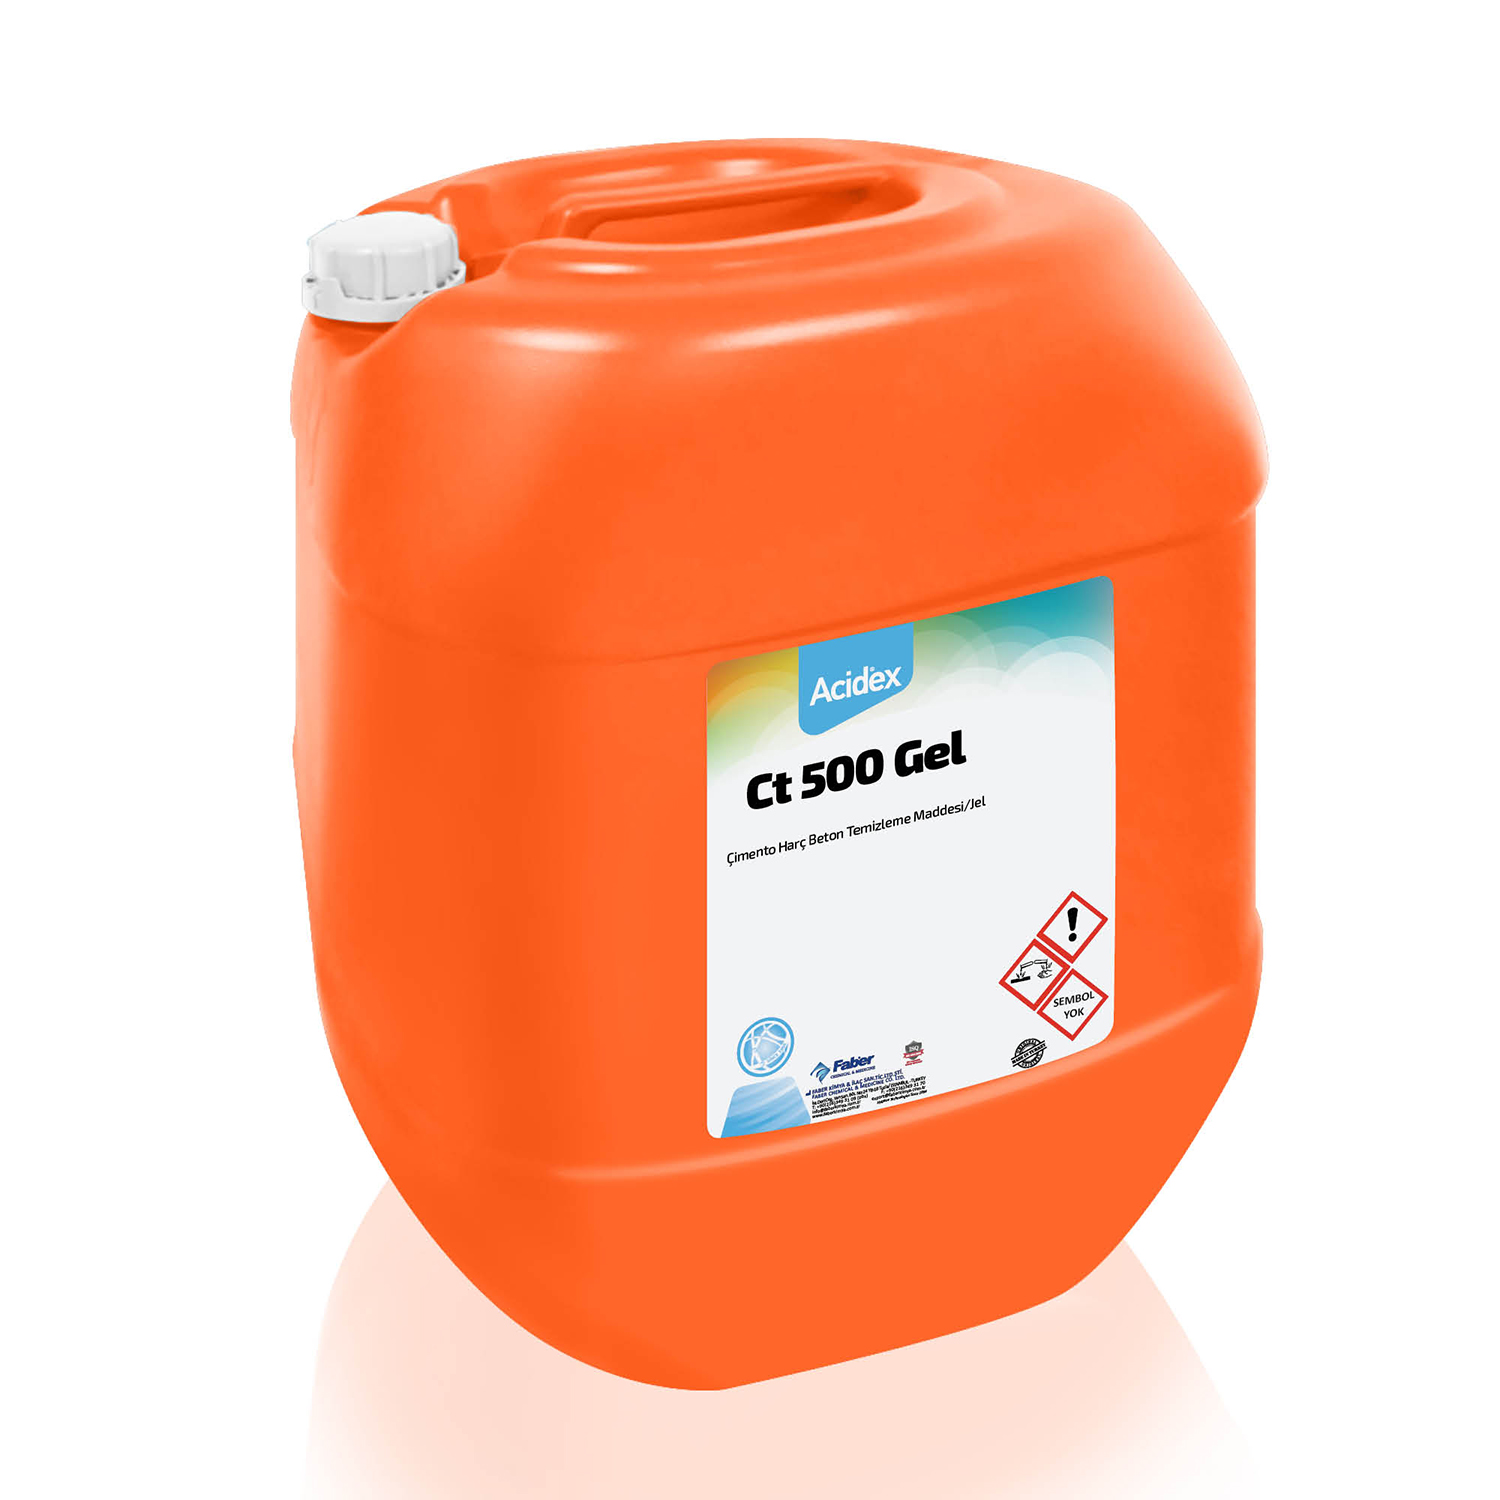 Acidex CT 500 Gel